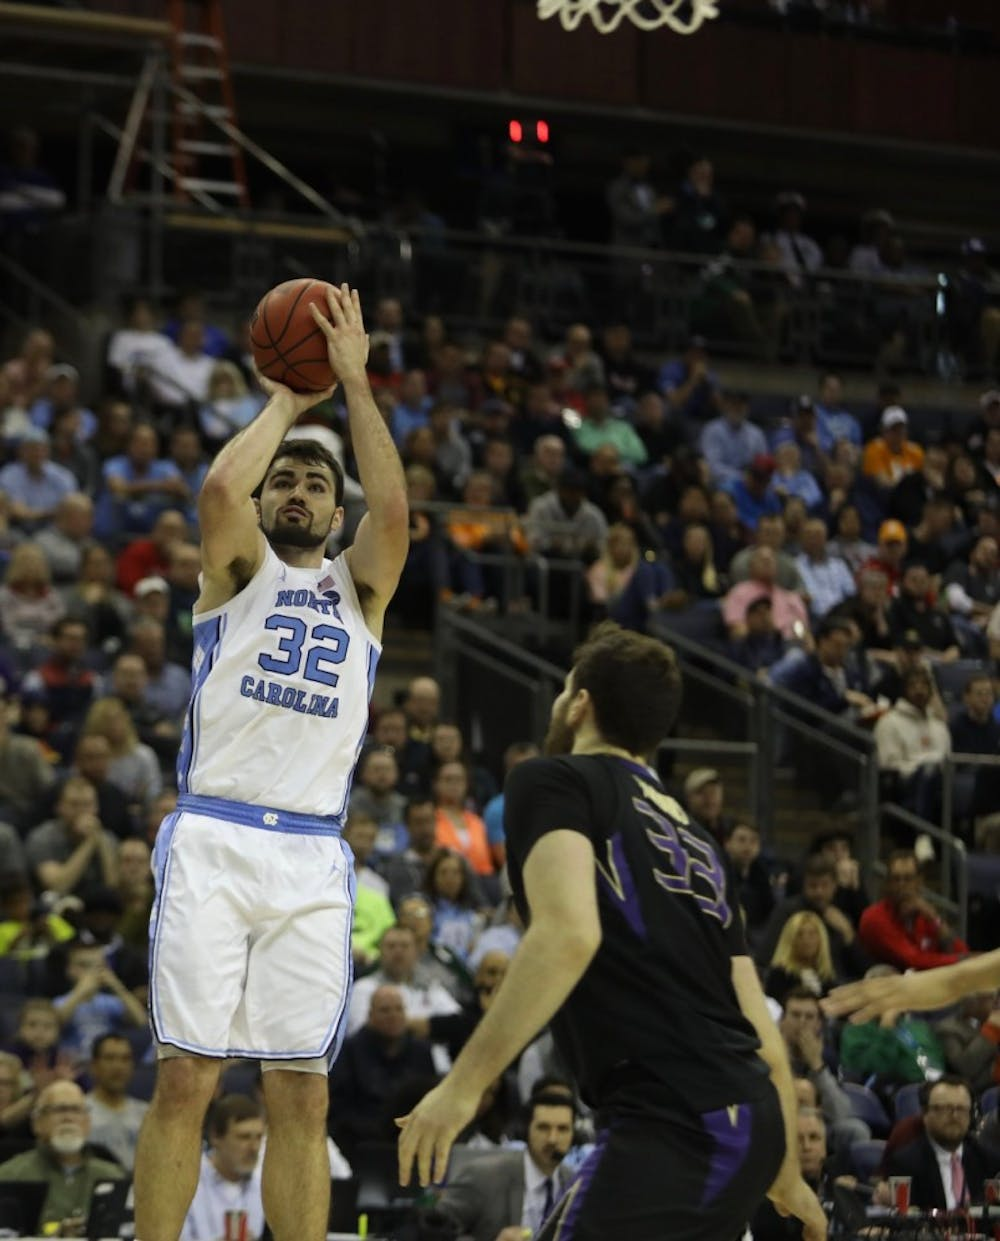 North Carolina handles No. 9 seed Washington, 81-59, earns Sweet Sixteen appearance